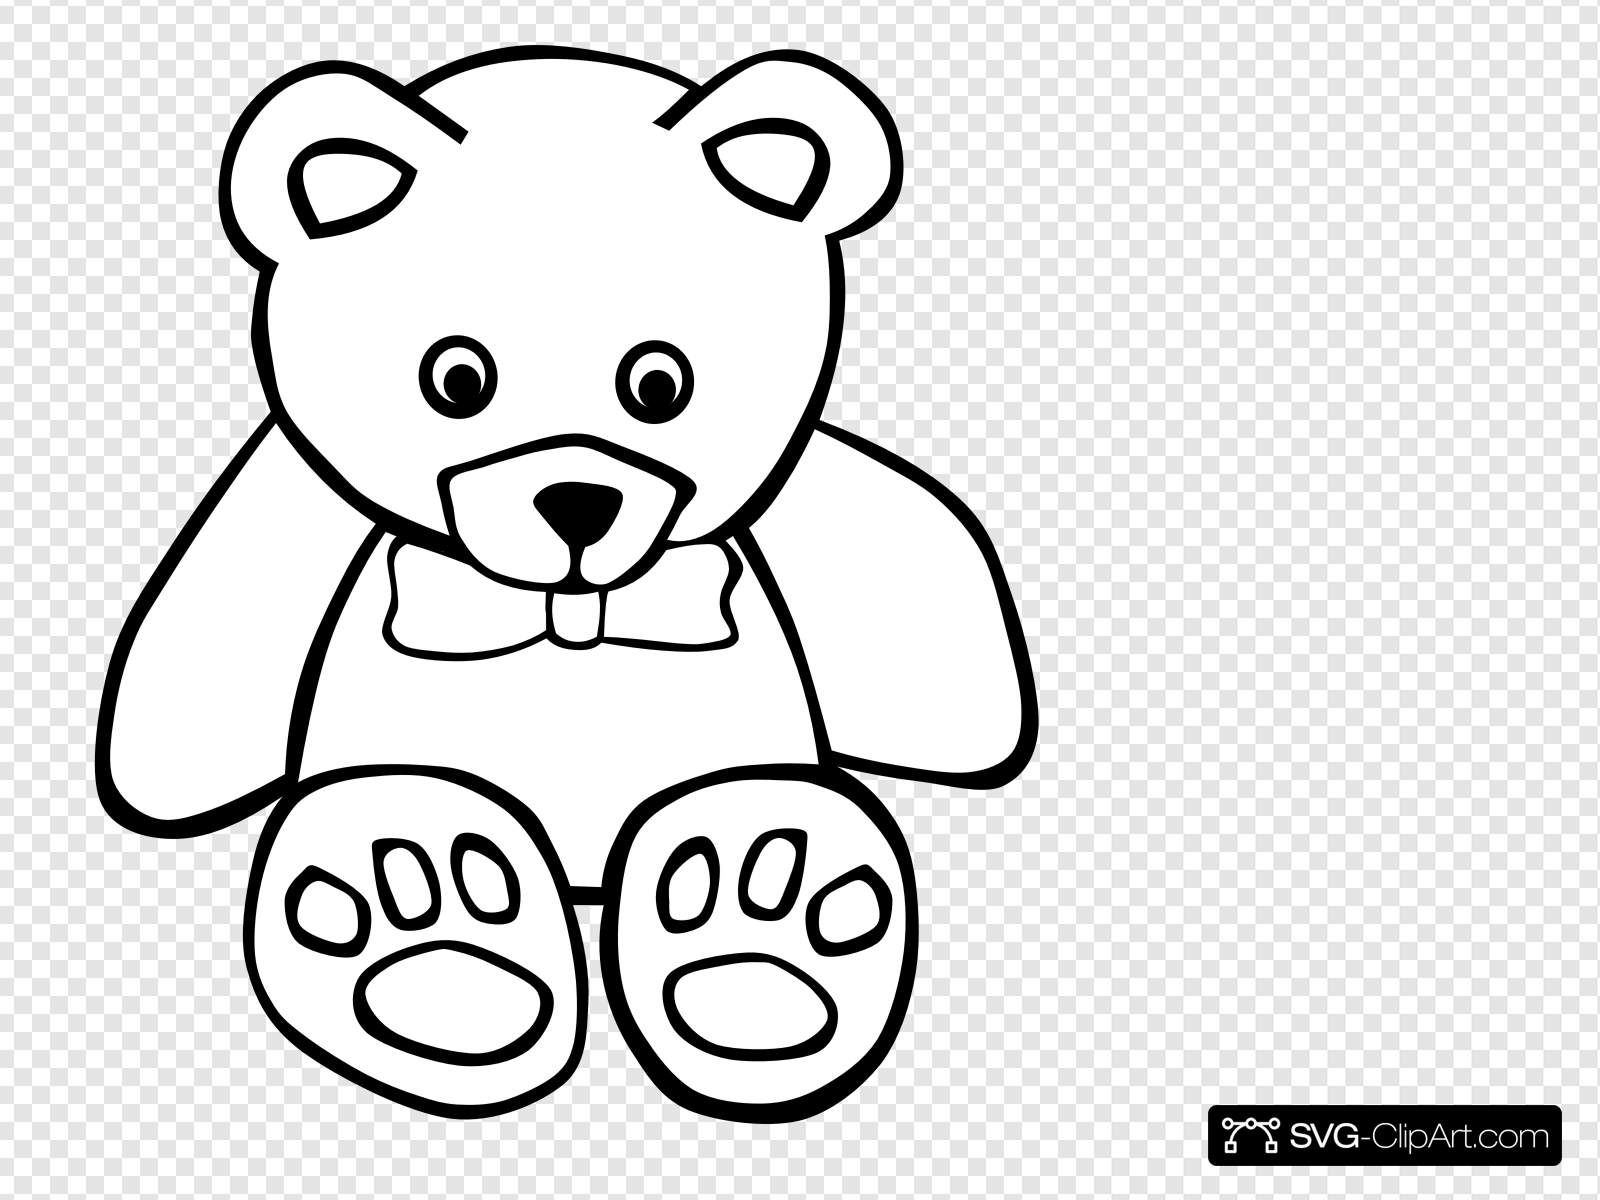 Teddy Bear Outline Clip art, Icon and SVG.